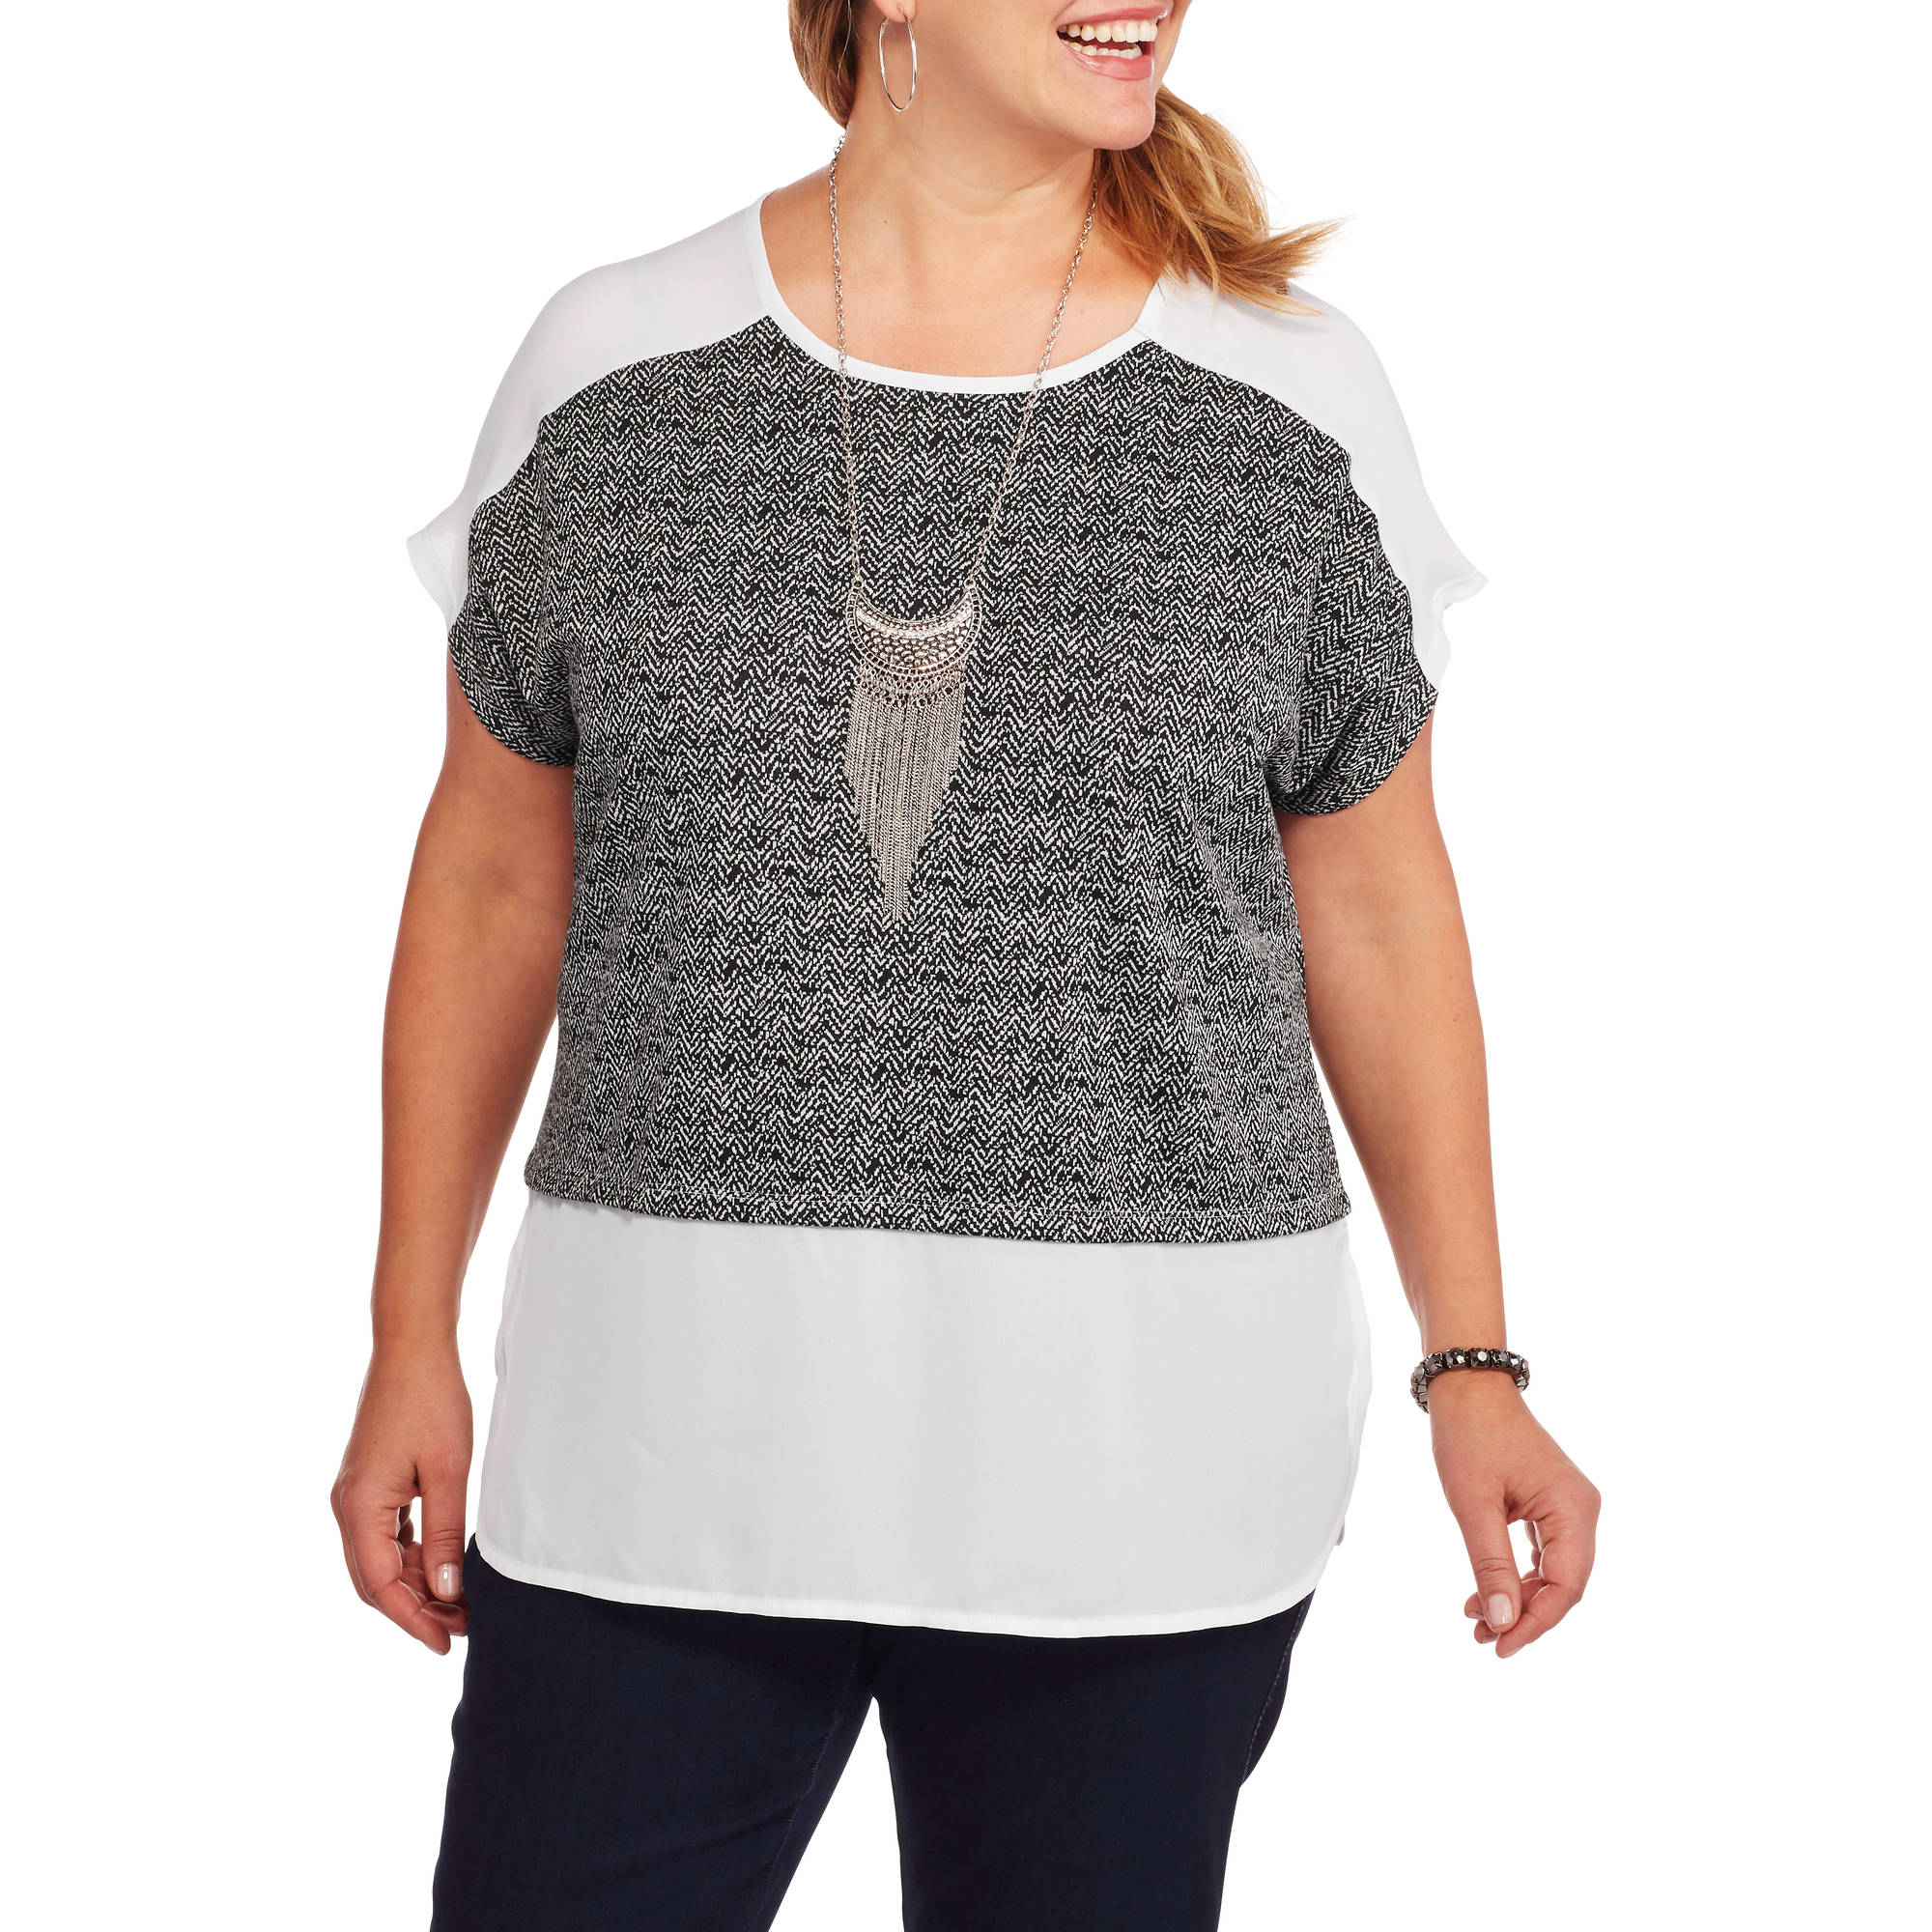 Concepts Women's Plus Mixed Texture Knit Top with Georgette Inset